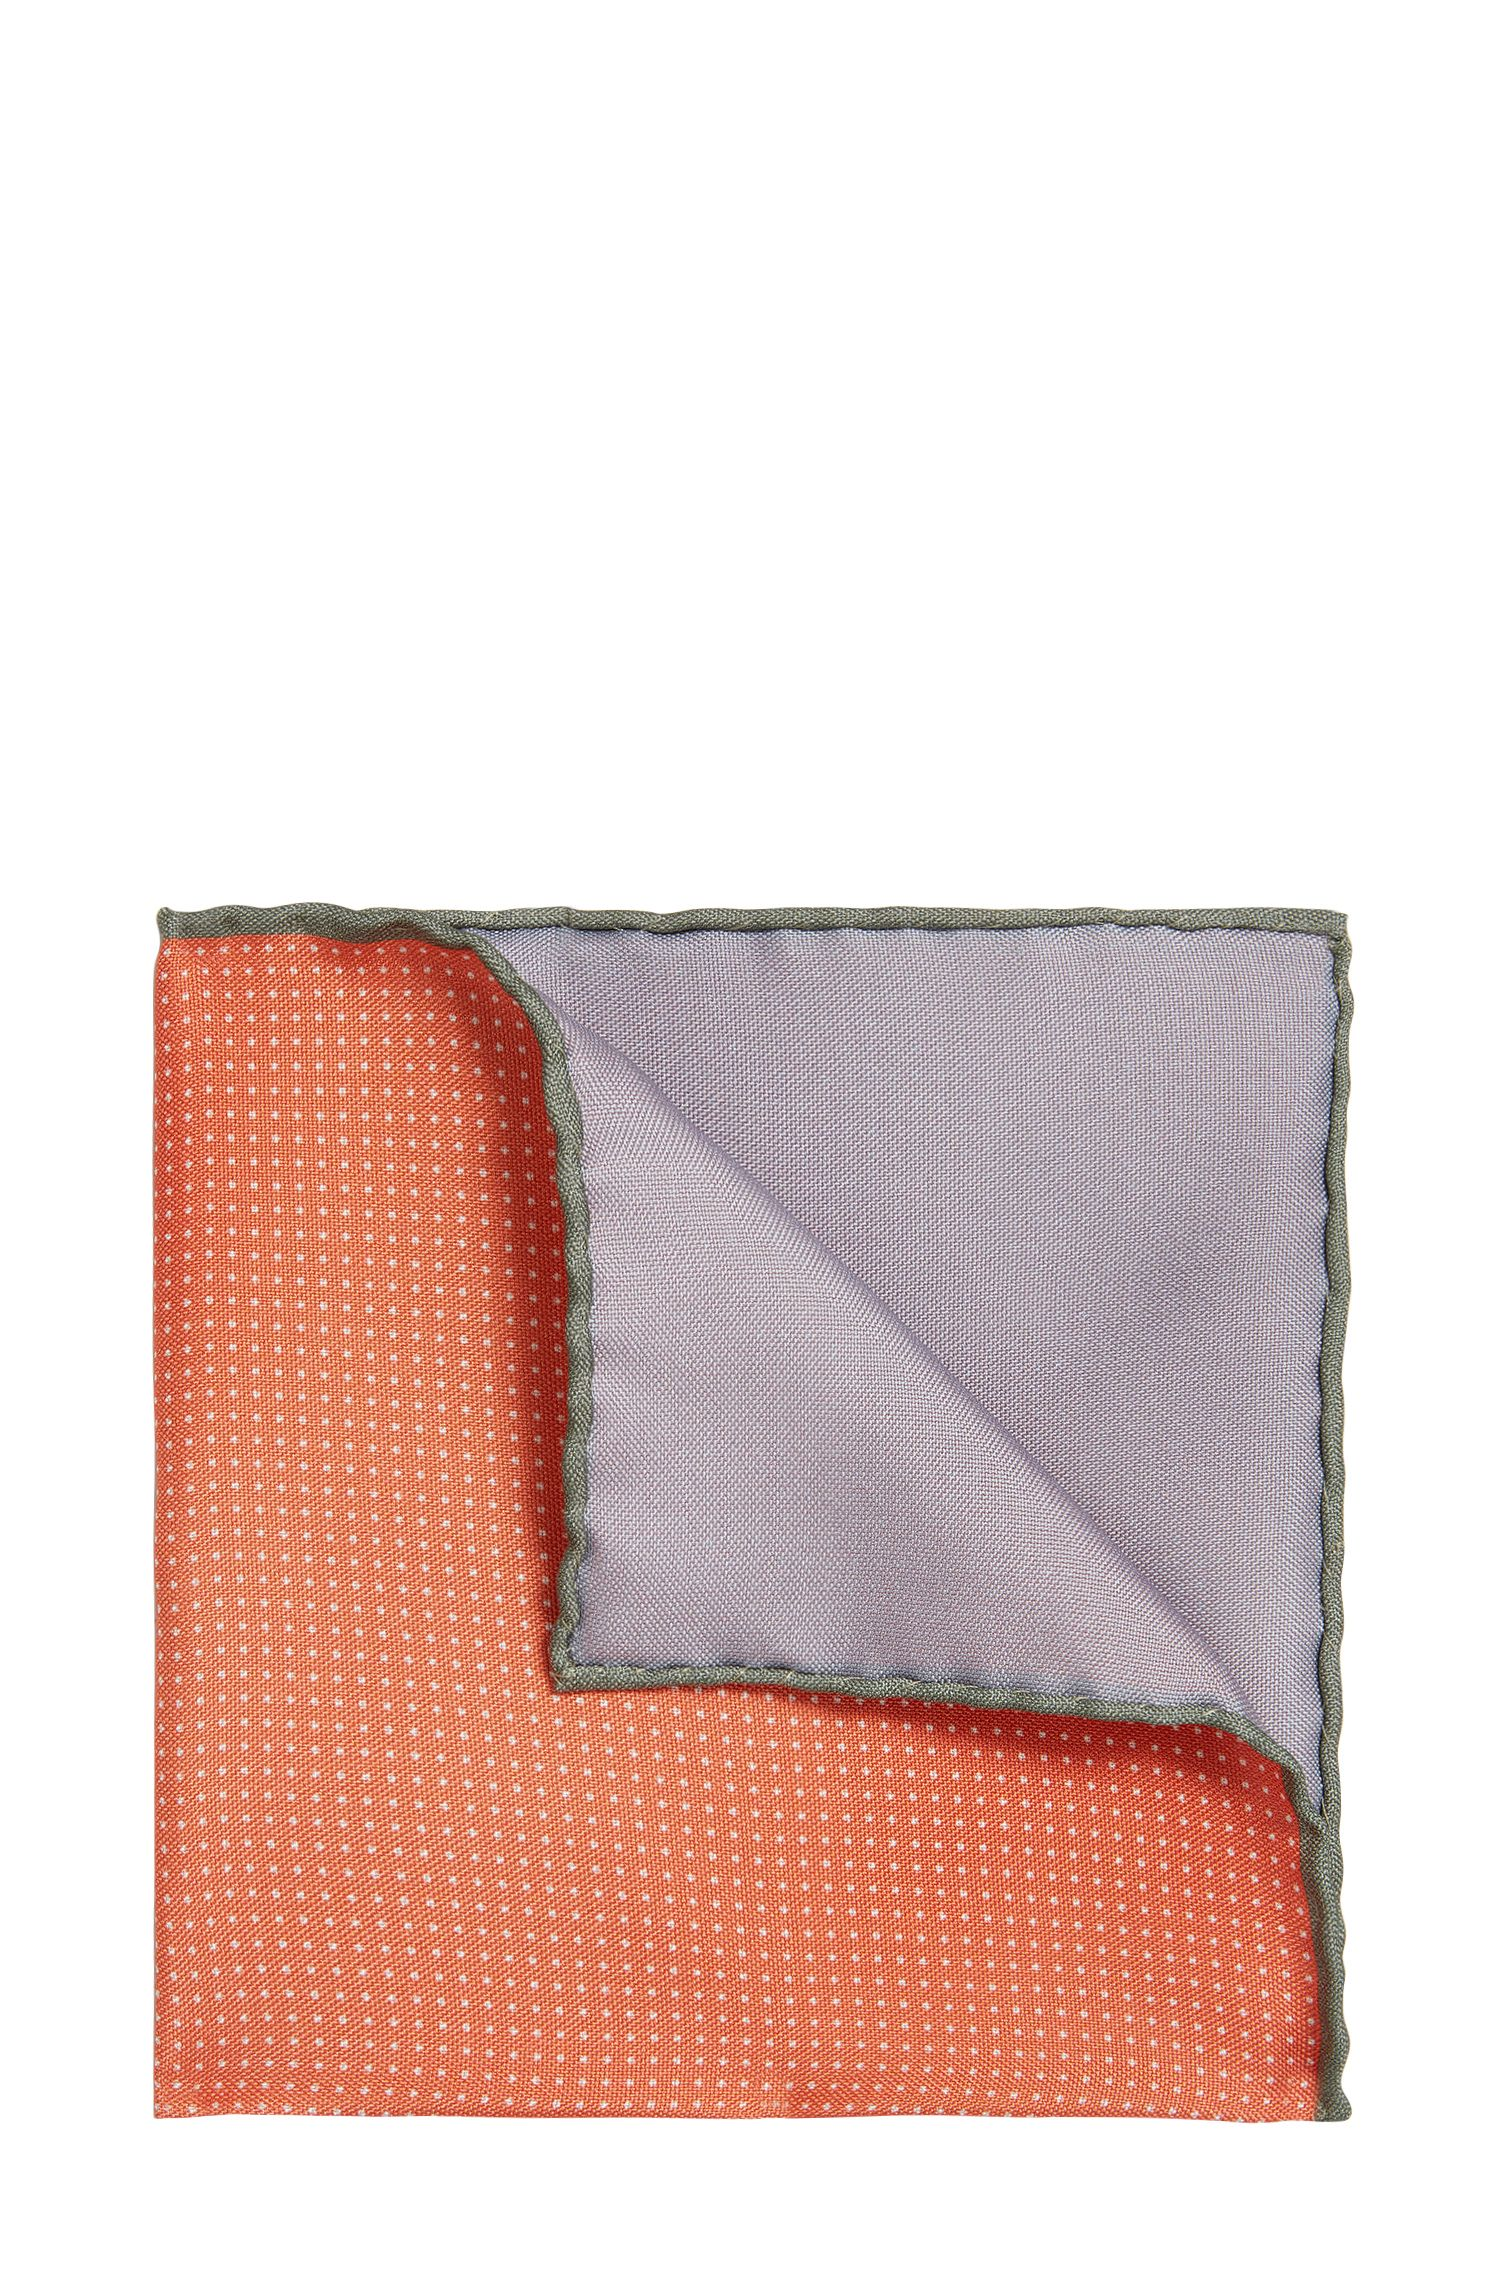 Gepunktetes Tailored Einstecktuch aus Seide: 'T-Pocket sq. cm33x33'